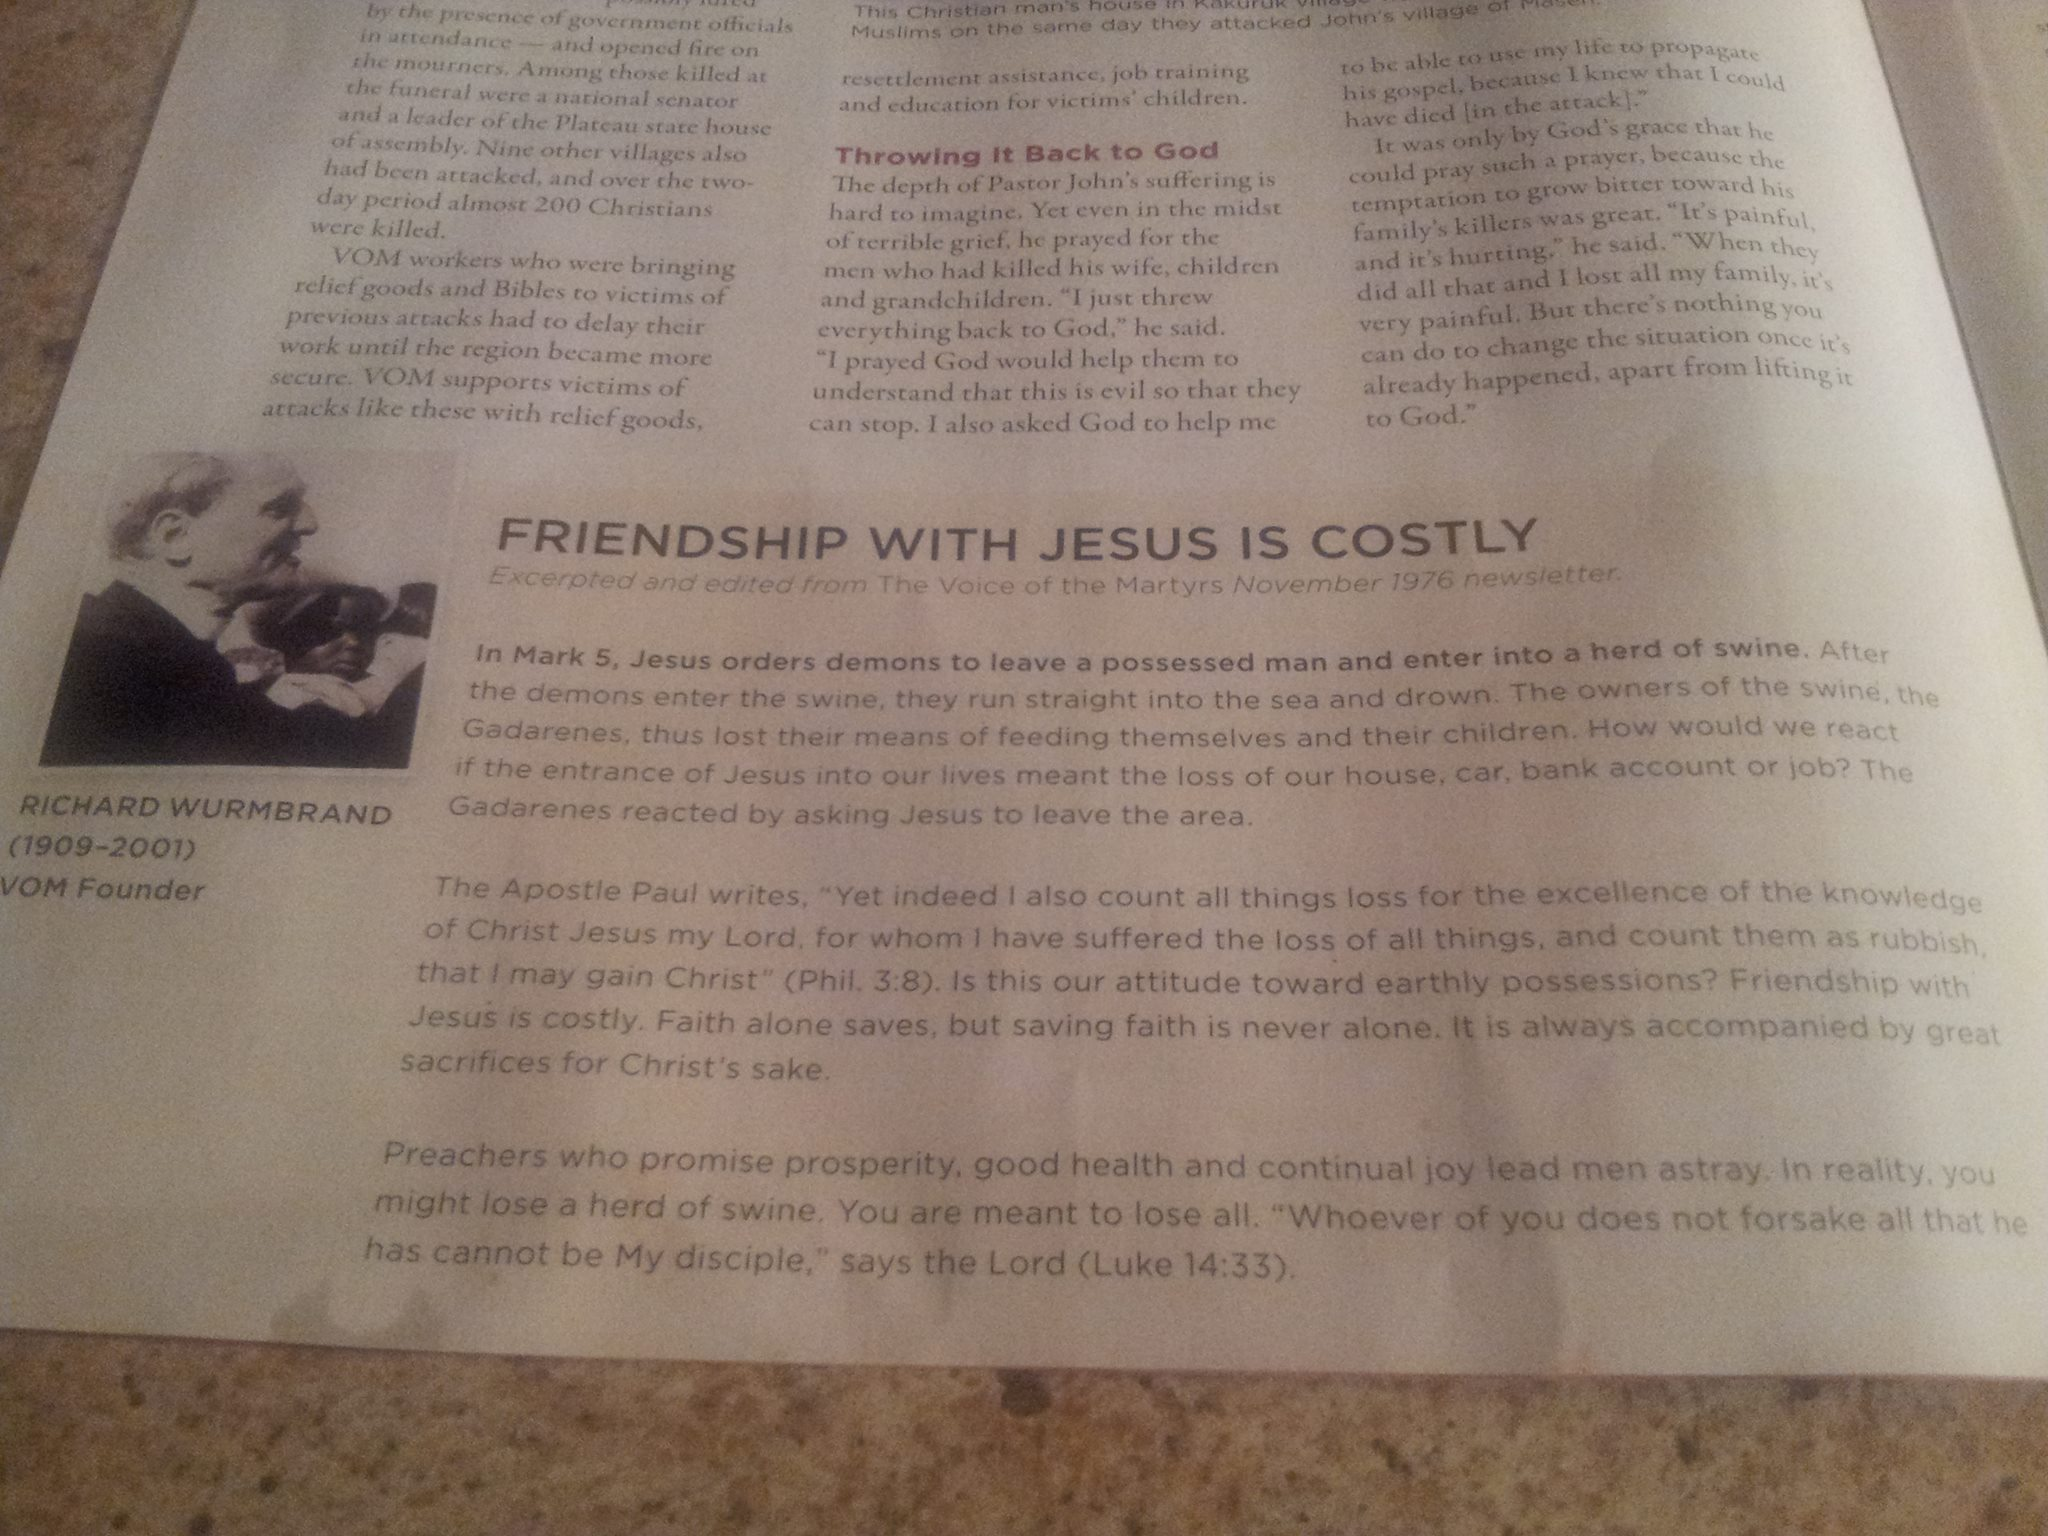 Friendship with Jesus is Costly